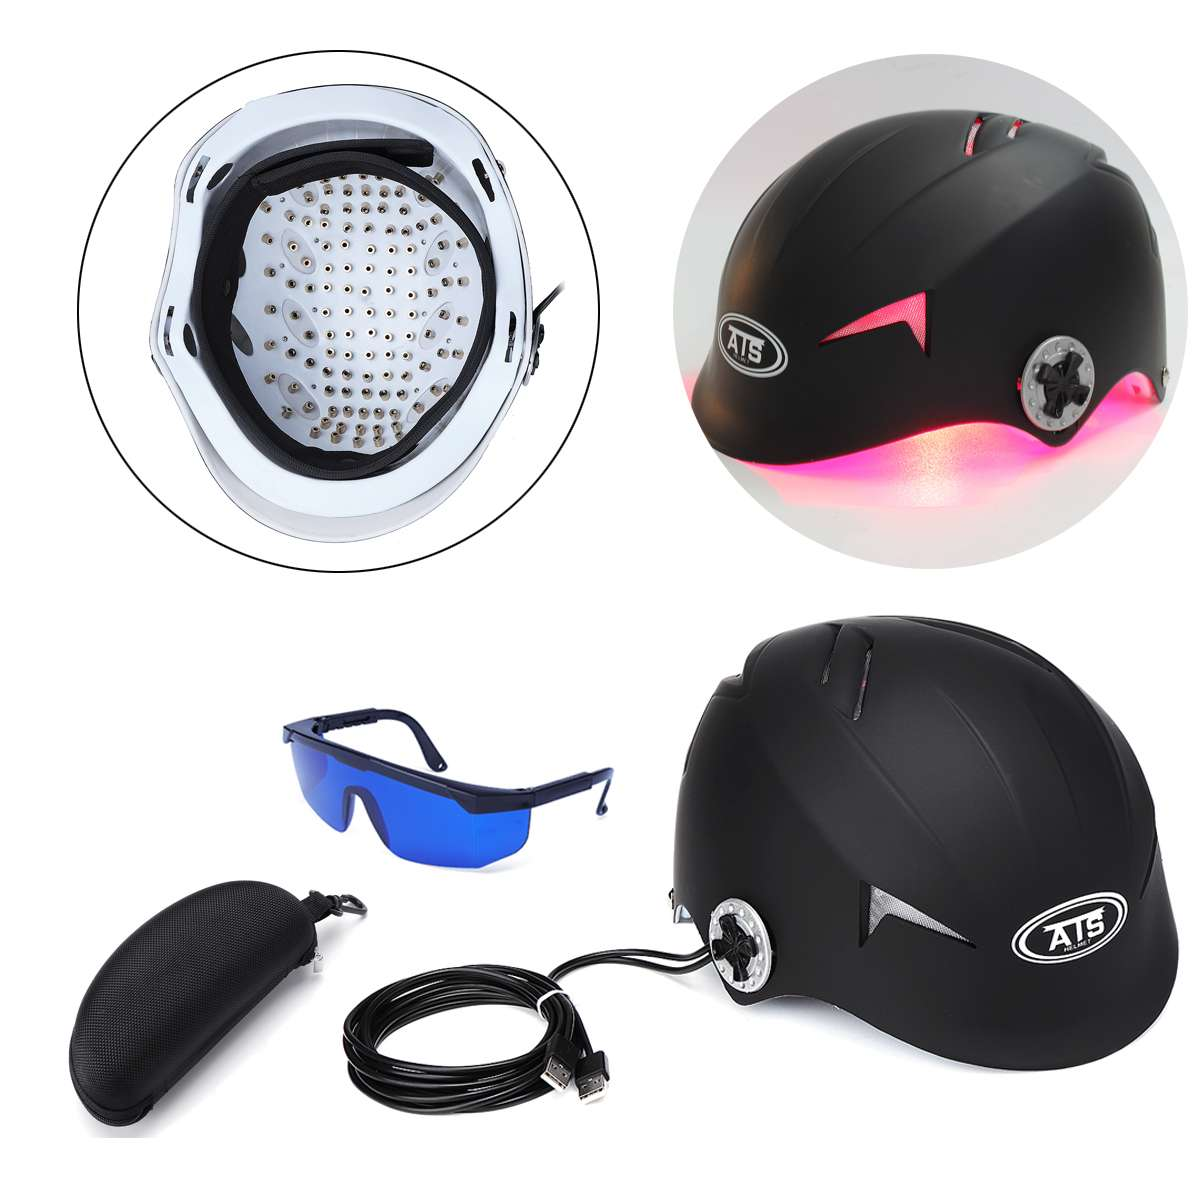 Upgrate Hair Regrowth Laser Helmet Hair Loss Medical Therapy Laser Cap 128 Diodes Hair Fast Regrowth Machine with Free Glasses-in Hair & Scalp ...